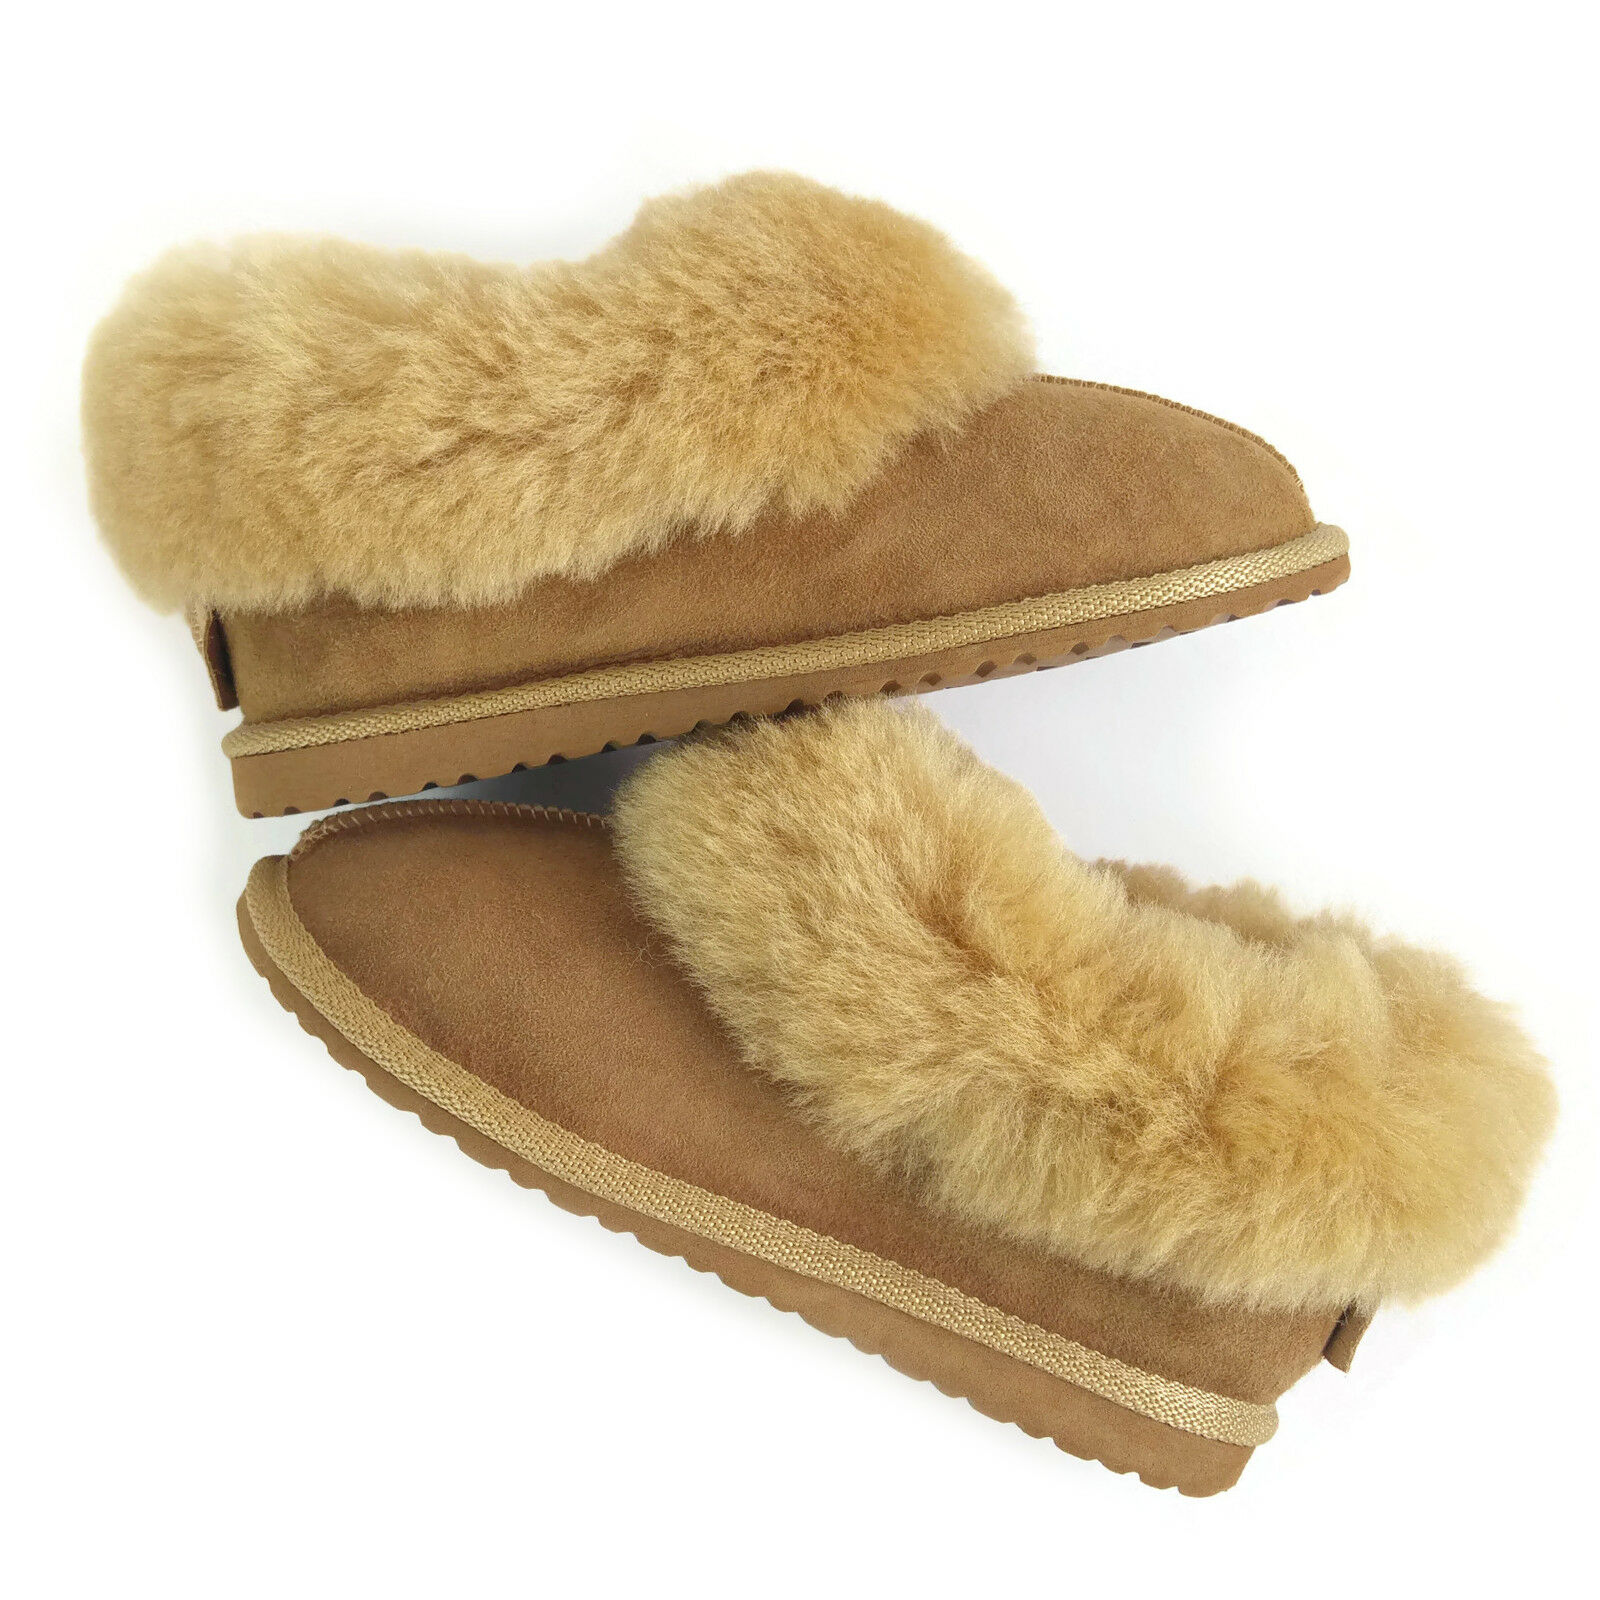 Classic Woman's Golden Beige 100% Real Sheepskin Fur Slippers Gift Box & Gift Slippers Bag 73b324